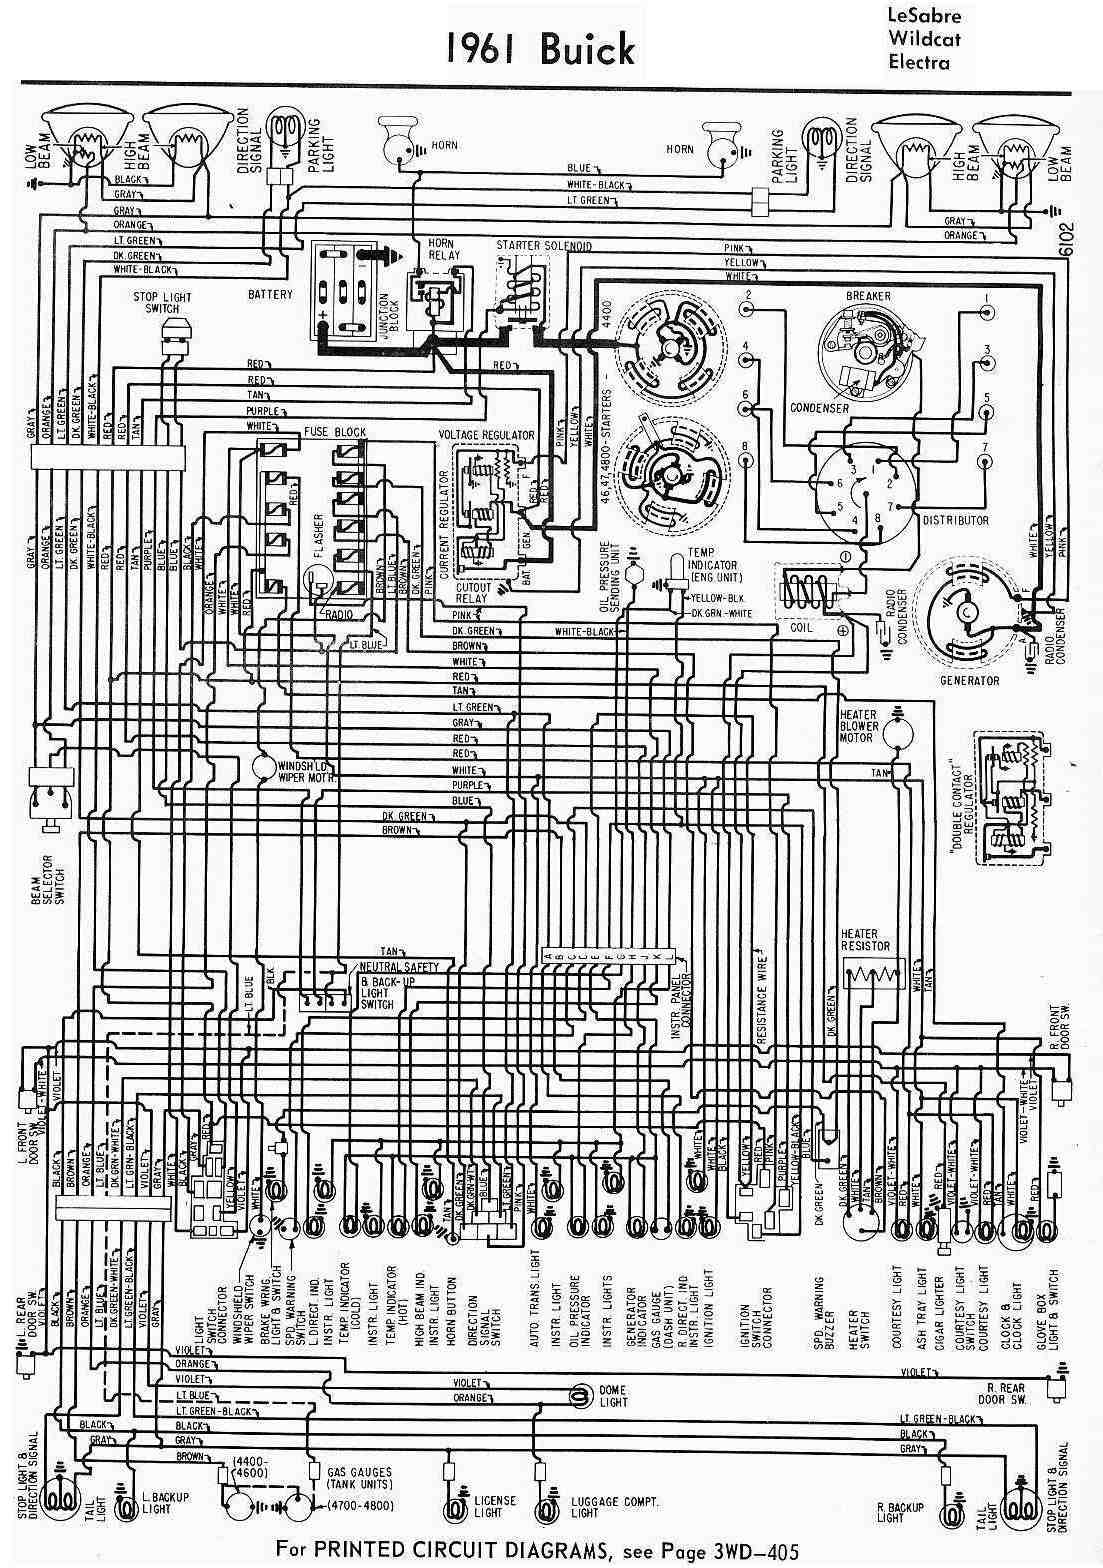 small resolution of wiring diagram for a 1995 buick regal get free image about wiring 1995 buick lesabre wiring